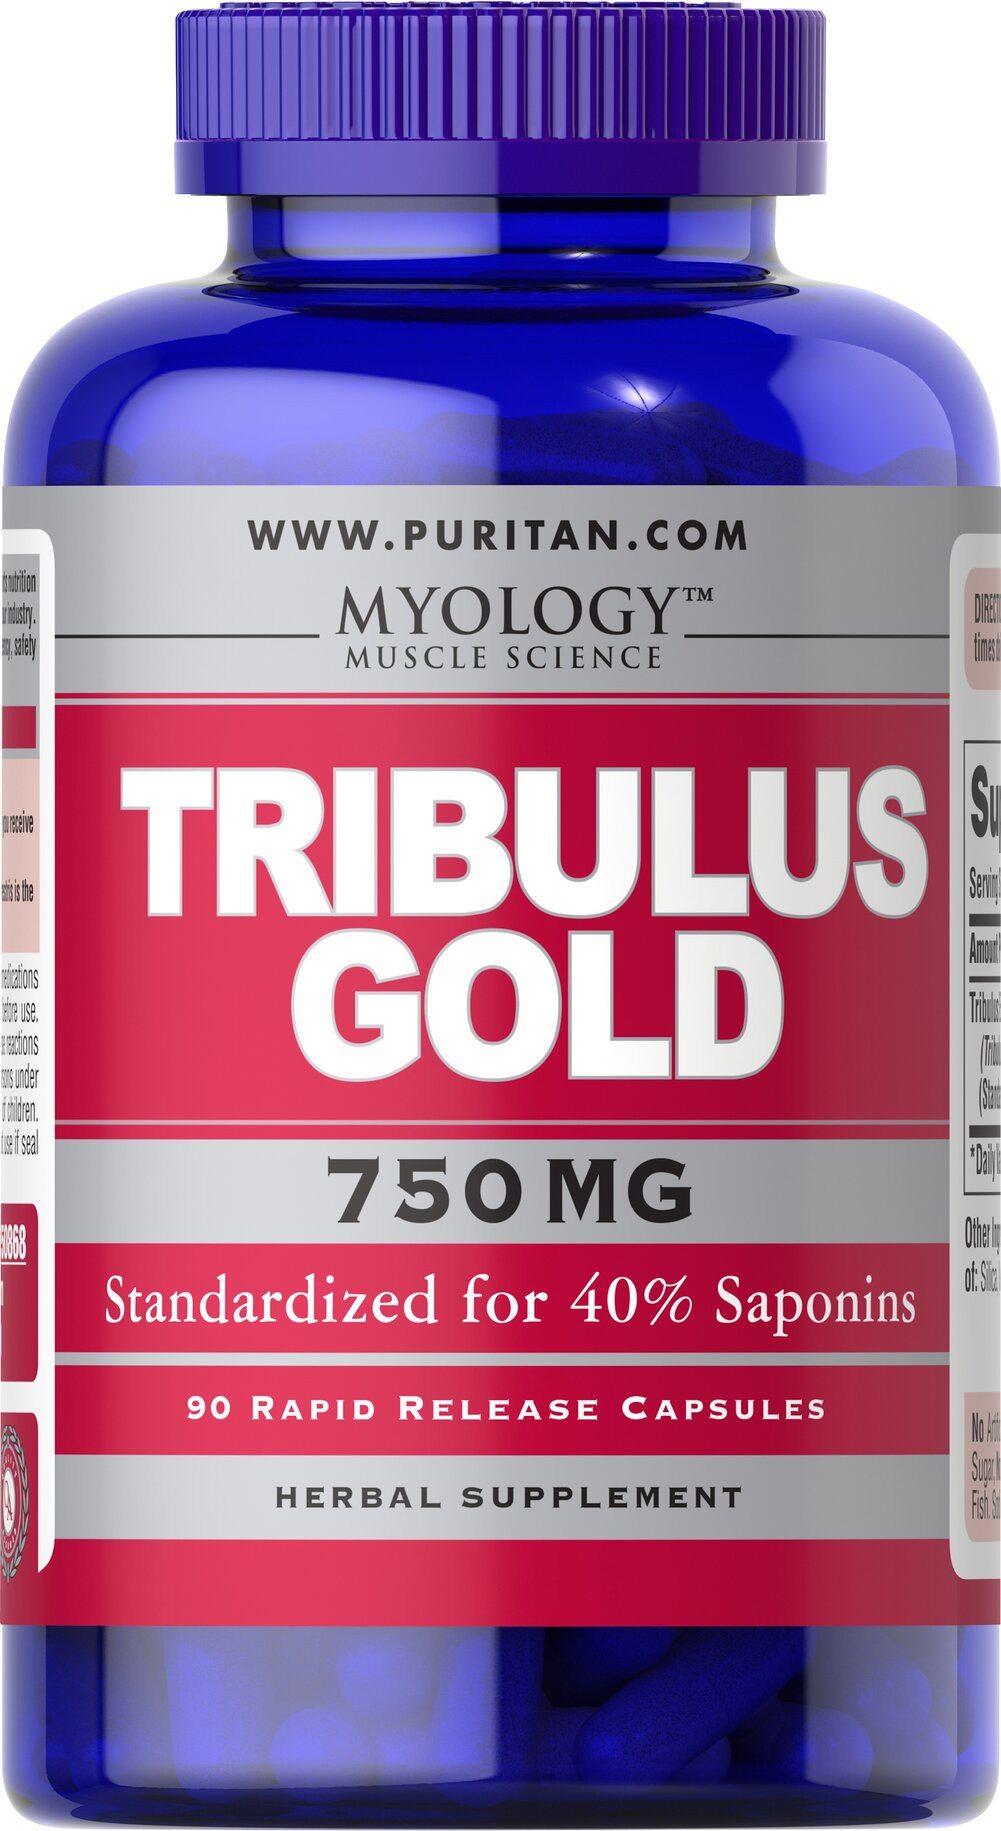 Tribulus Gold Standardized Extract 750 mg  90 Capsules 750 mg $19.99